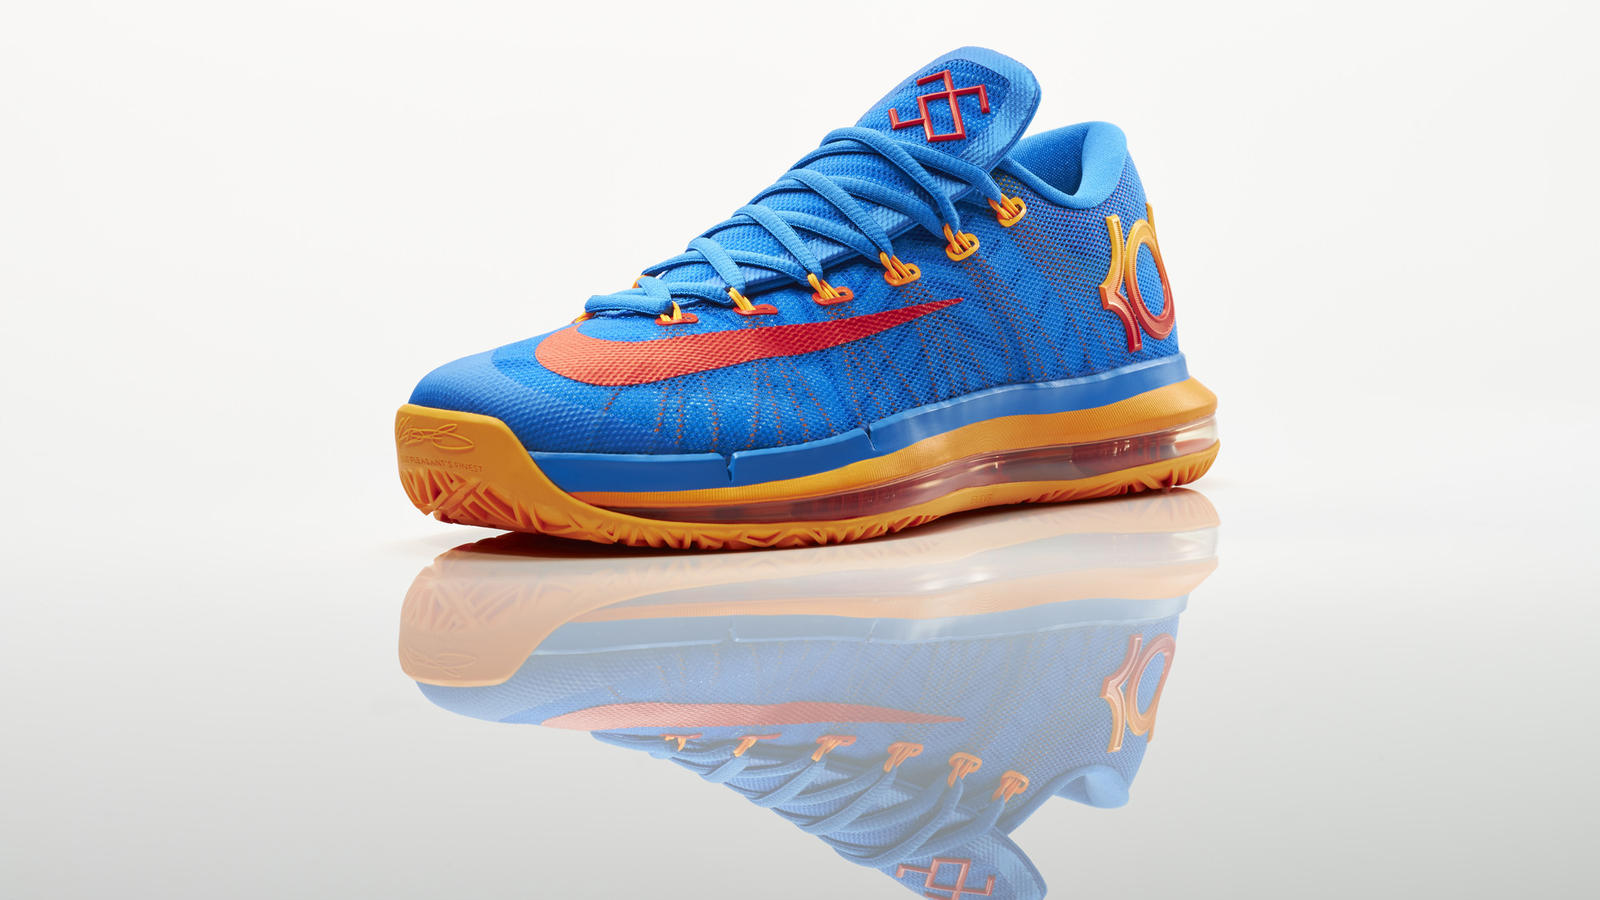 su14_bb_kdvi_elite_642838_400_return_3qtr_16943